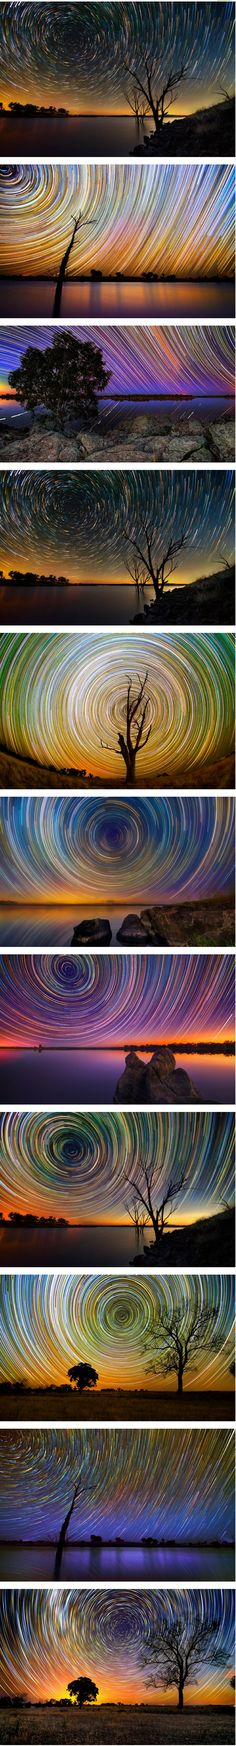 Some fascinating images. Whirl of Stars - Amazing sky images from Australia-based photographer Lincoln Harrison. In Harrison's photos, the rotation of the Earth makes the stars appear as if they're traveling across the sky.